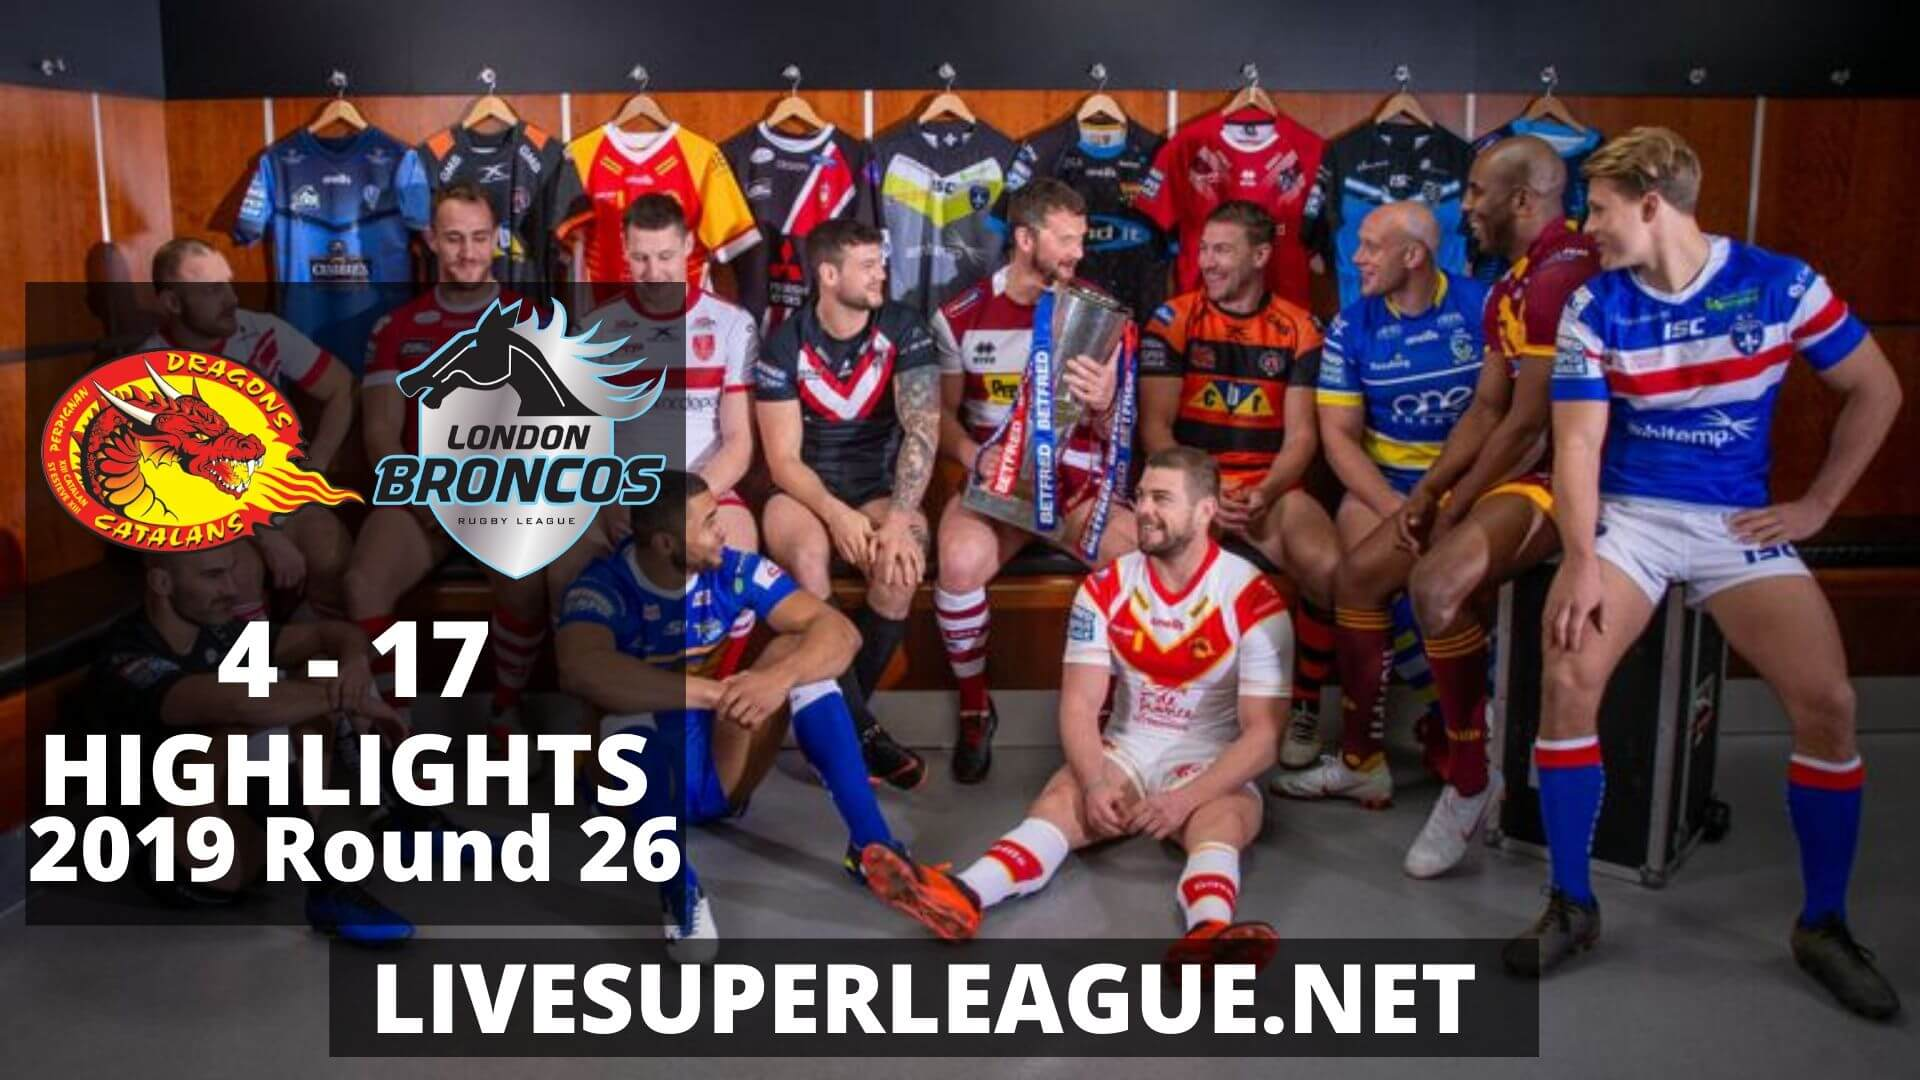 Catalans Dragons Vs London Broncos Highlights 2019 Round 26